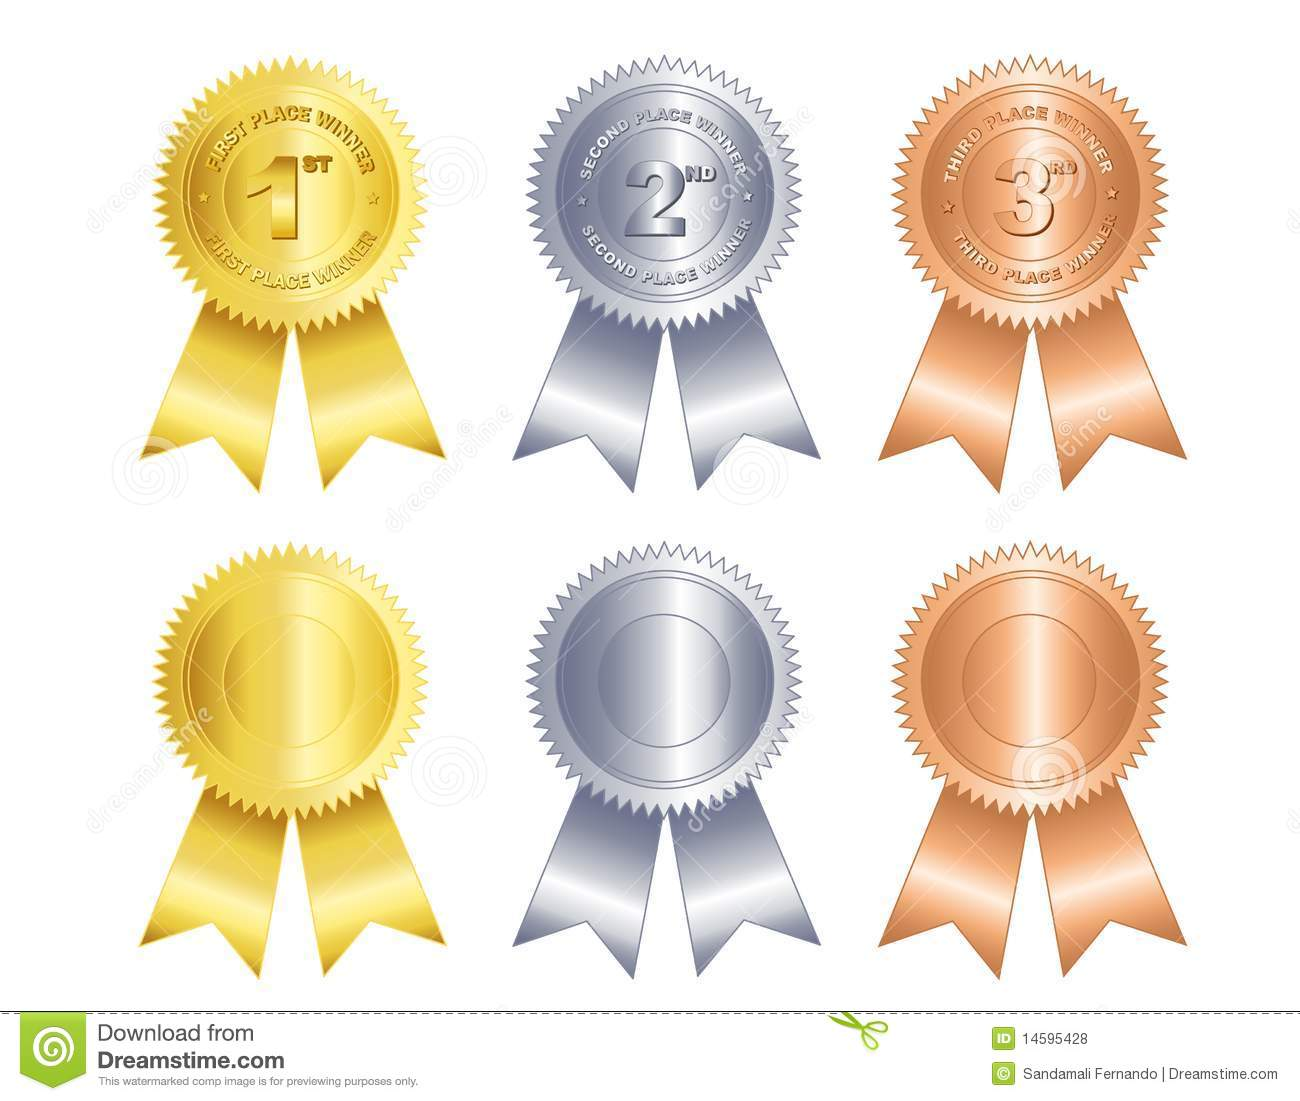 2nd place stock vector illustration royalty free 2nd place clipart - First Second Third Place Ribbon Royalty Free Stock Photos